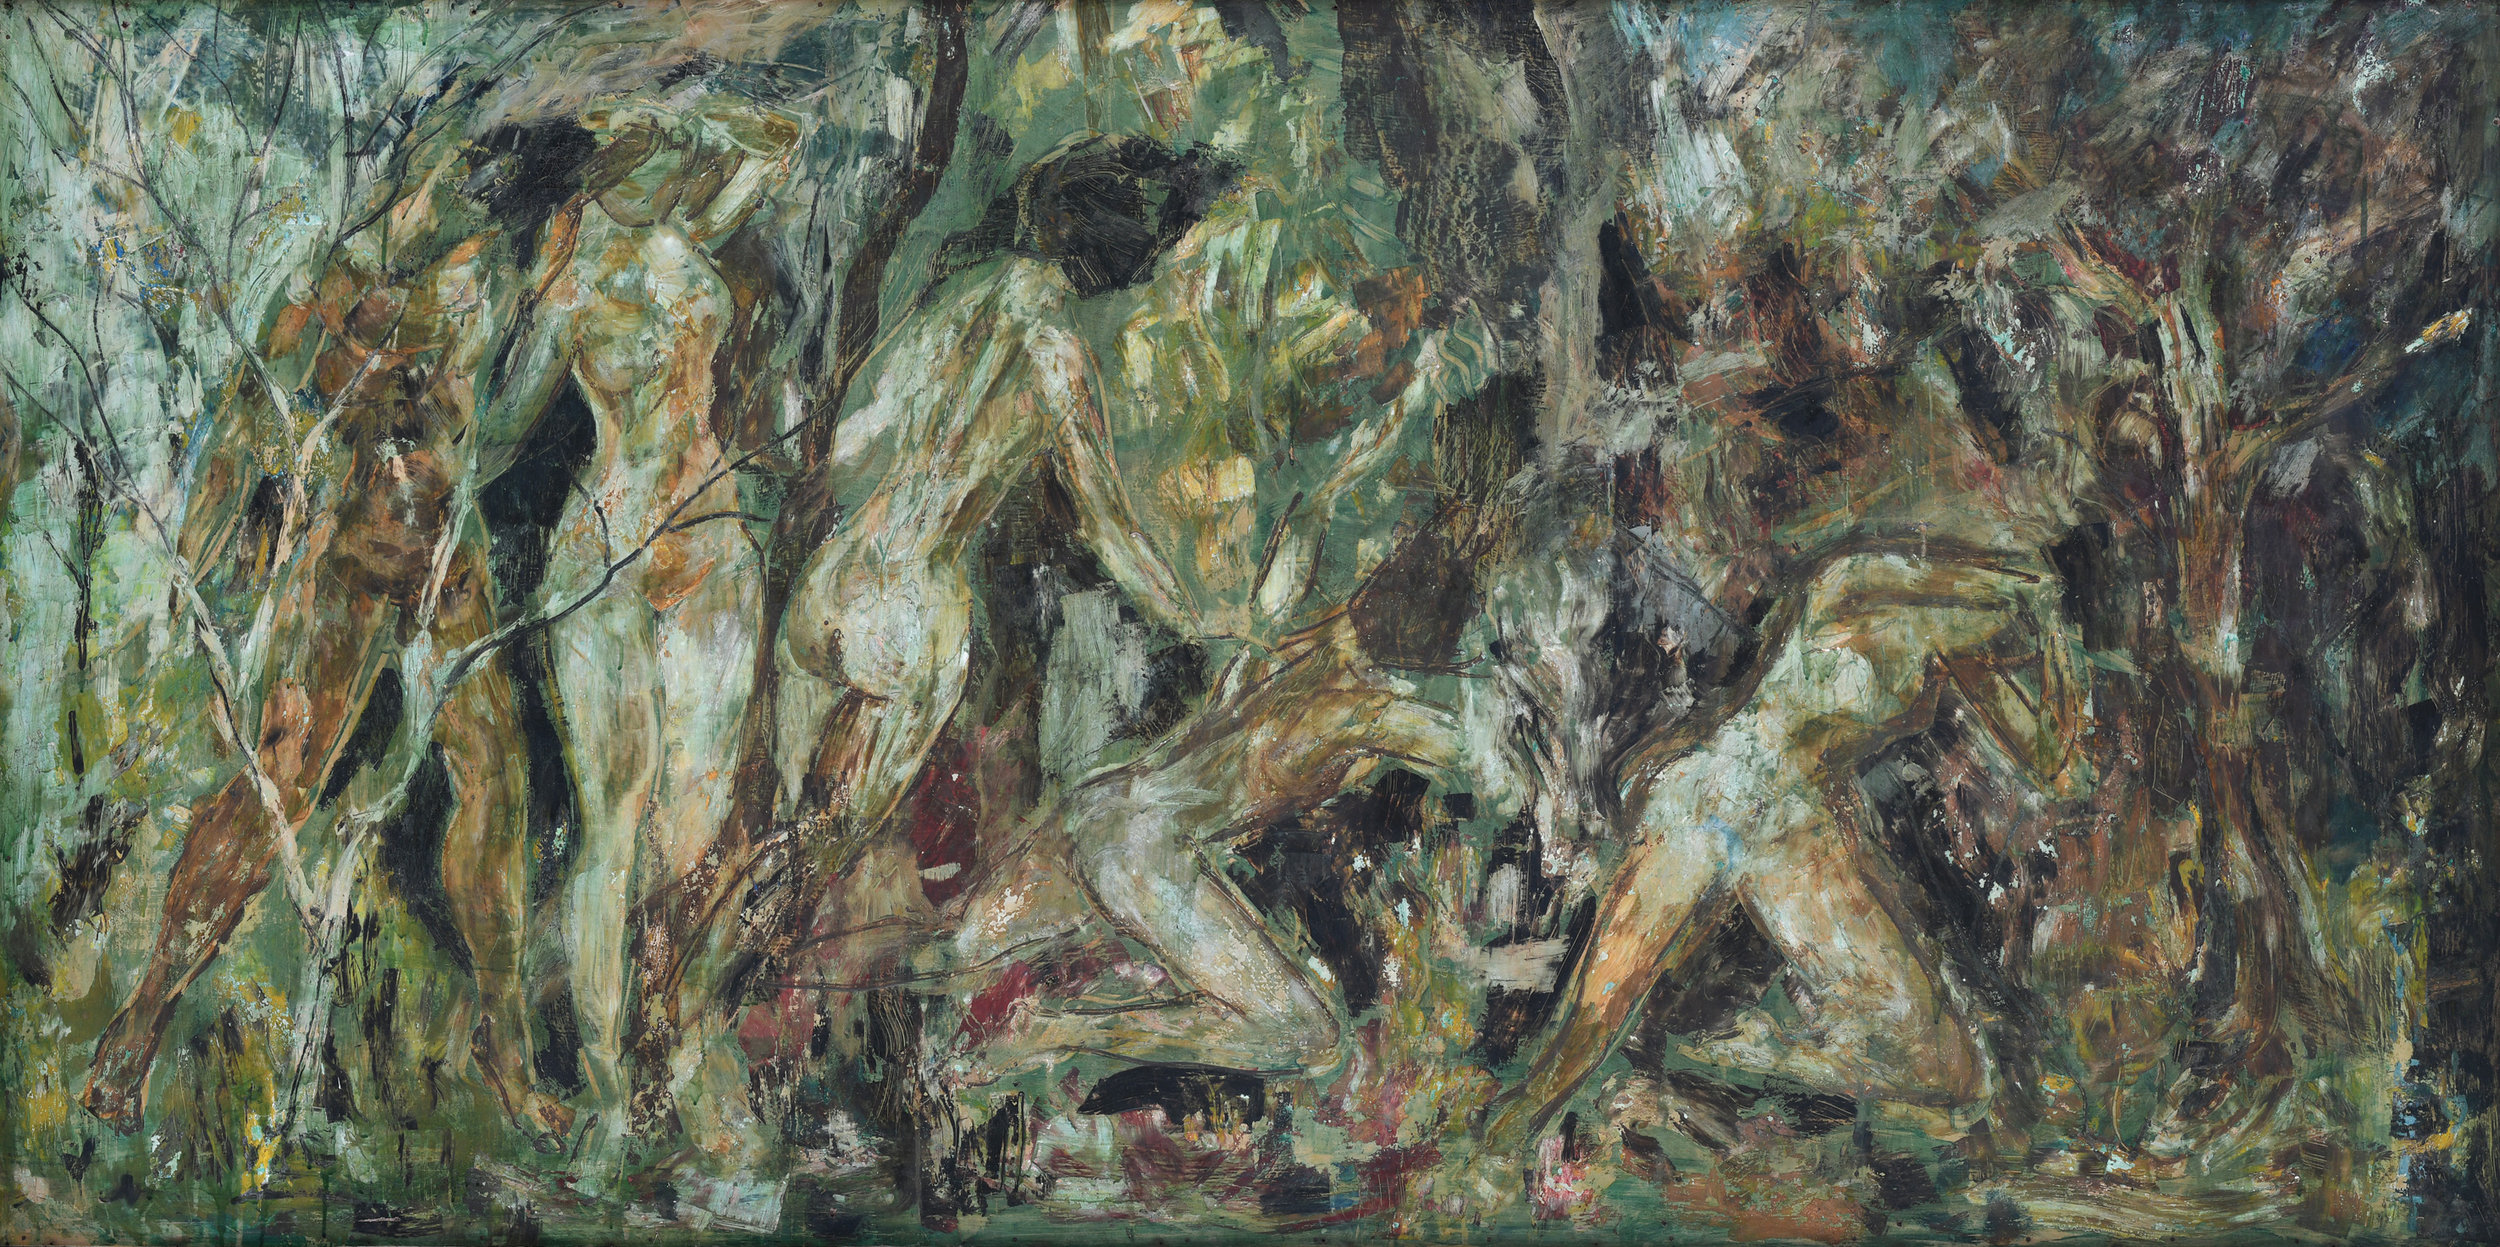 Vincent Hoisington, The Expulsion from Eden, oil on board, 130 x 240 cm, 1964